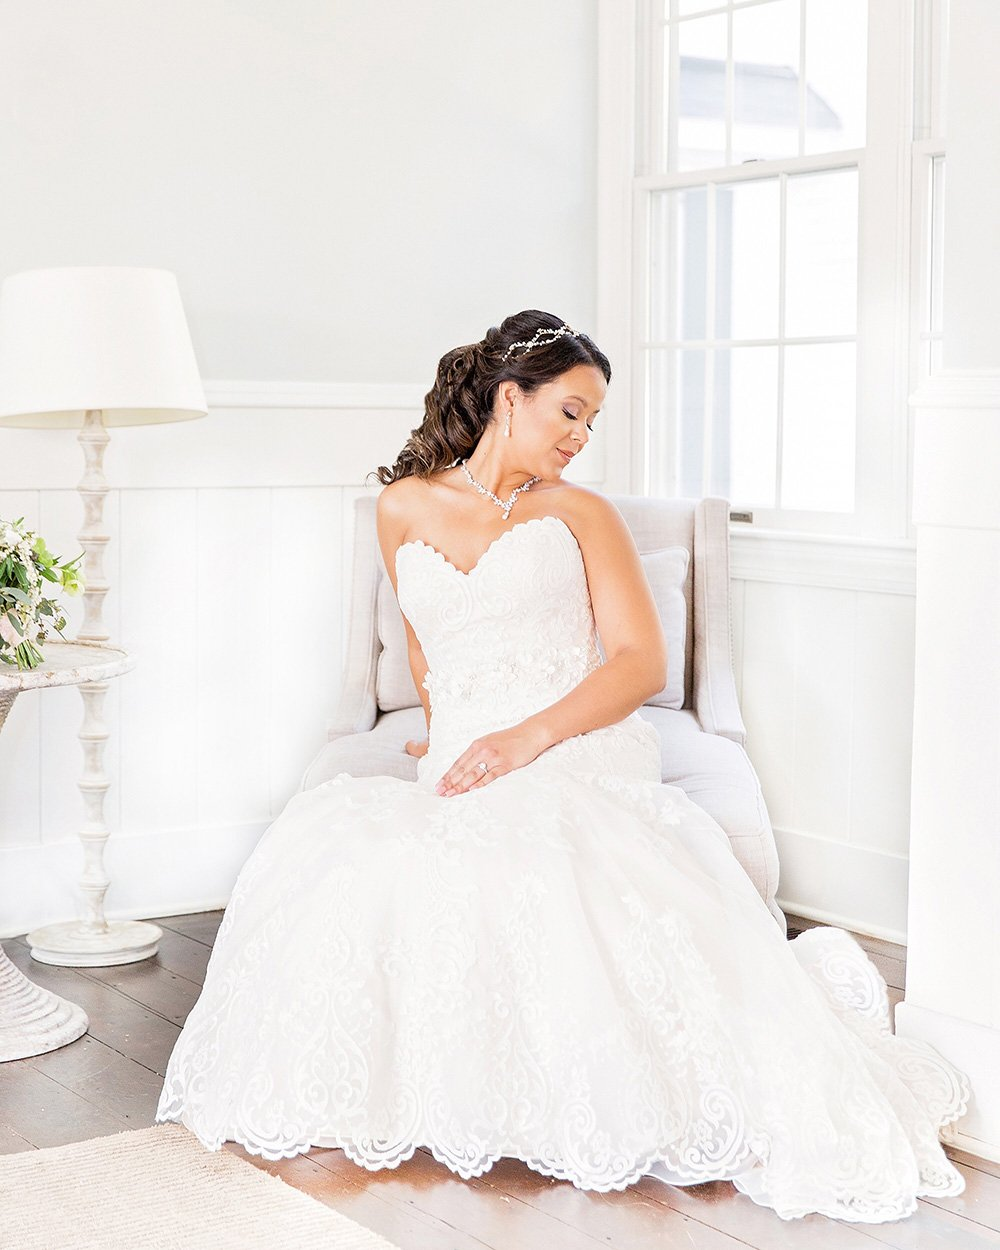 Wedding Dress by Wedding Photographer Leah Marie Photography + Stationery